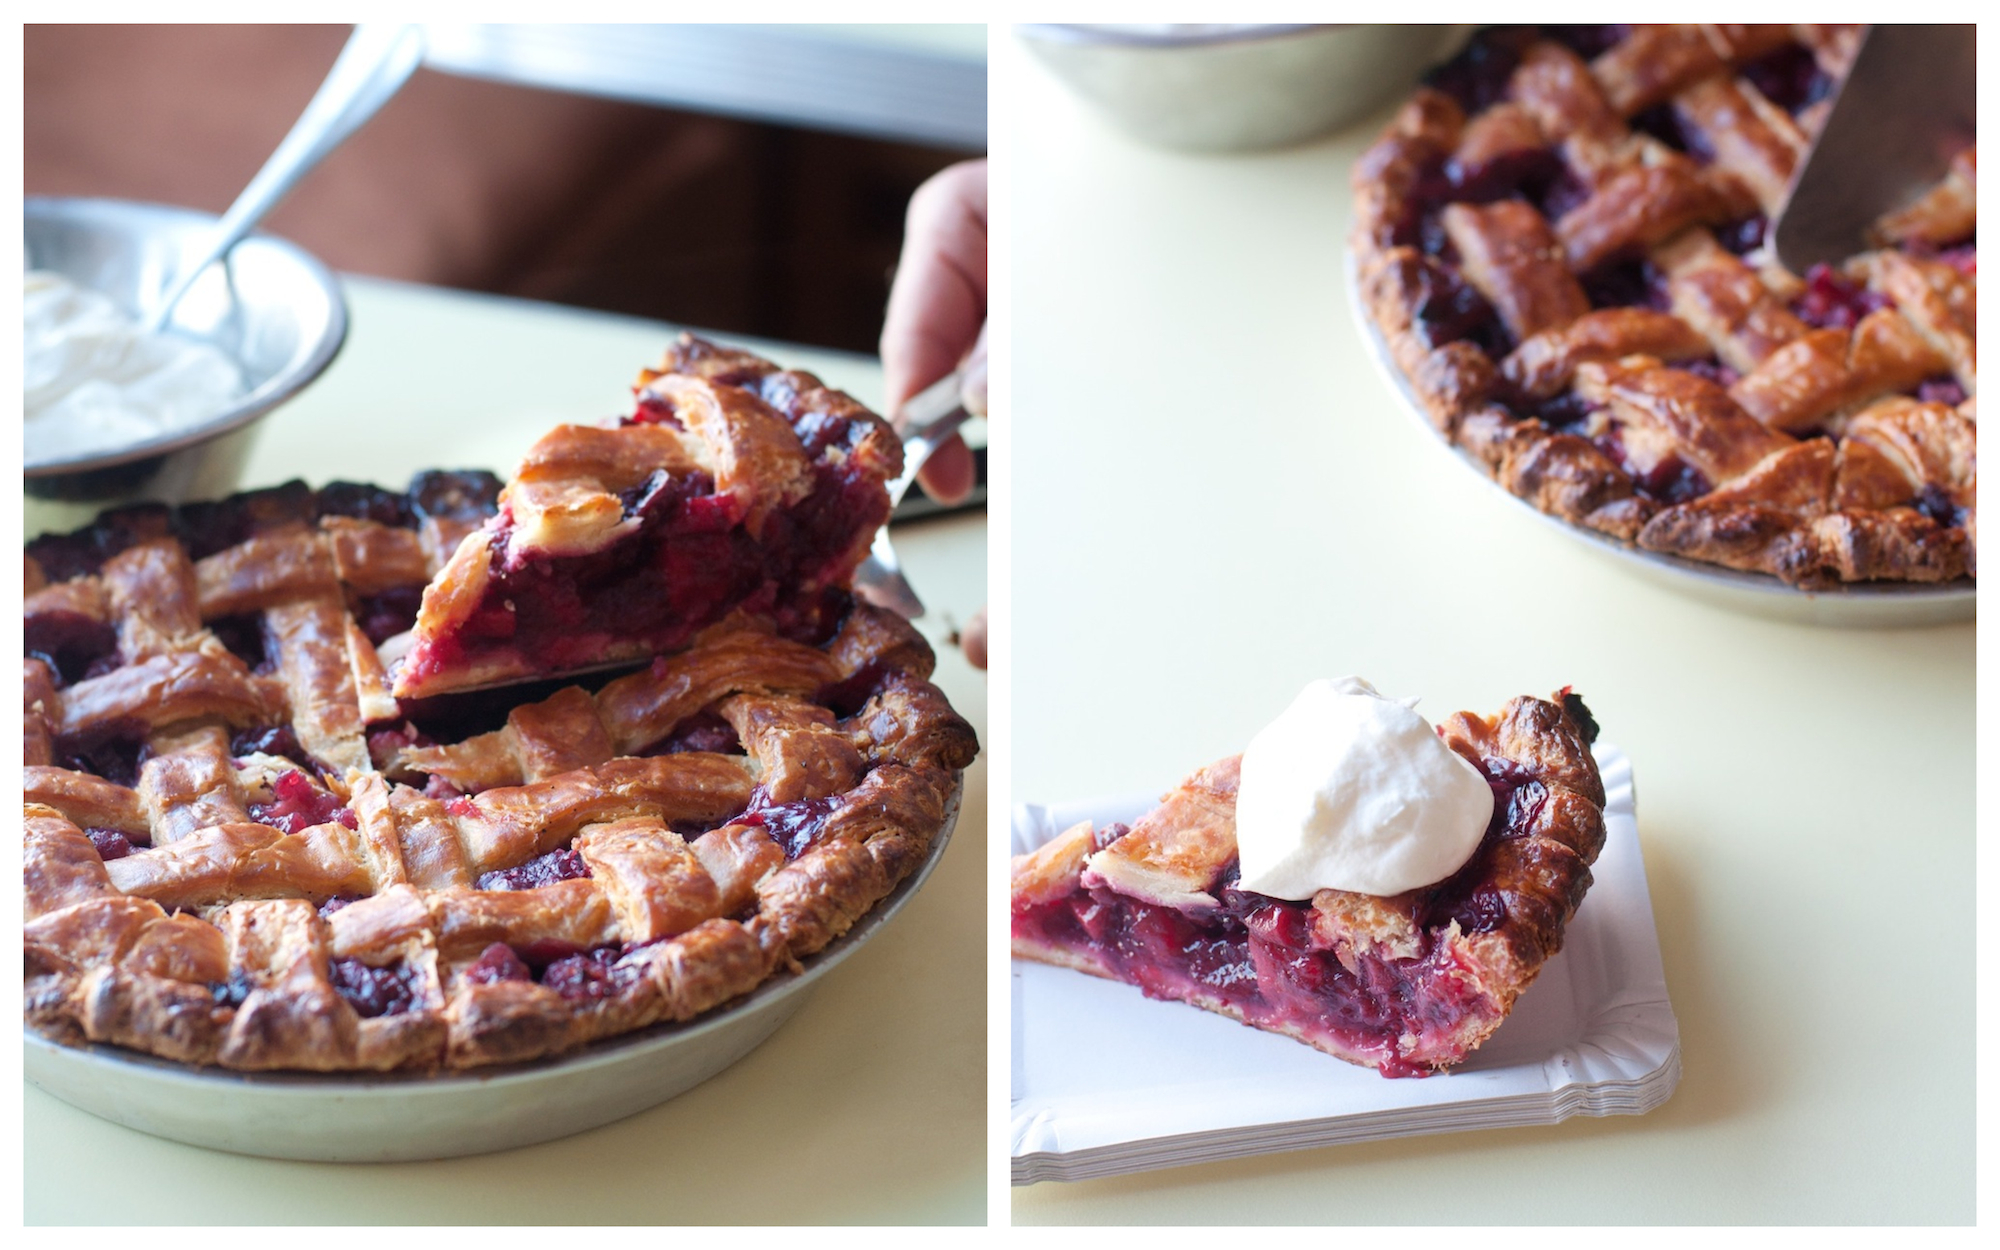 If you like freshly baked tarts, then Bob's Bakeshop is a great place to go for brunch in Paris.